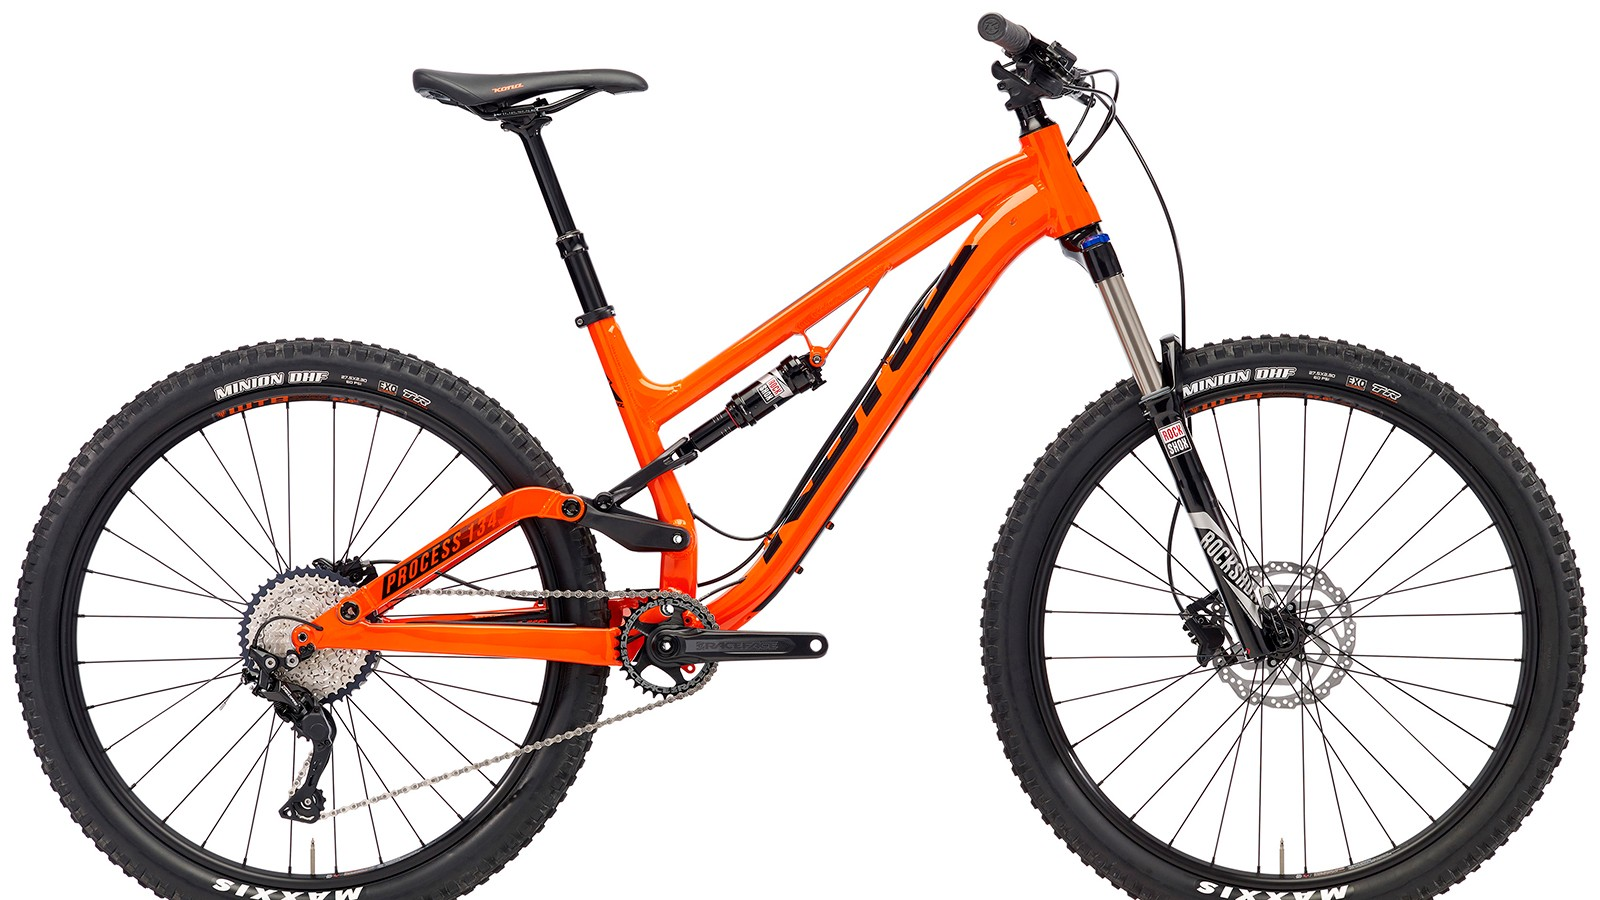 It's exciting to see brands offering well proportioned and well sepc'd affordable bikes. As an all round trail bike, the Process 134 SE looks bang on the money, at £1,899